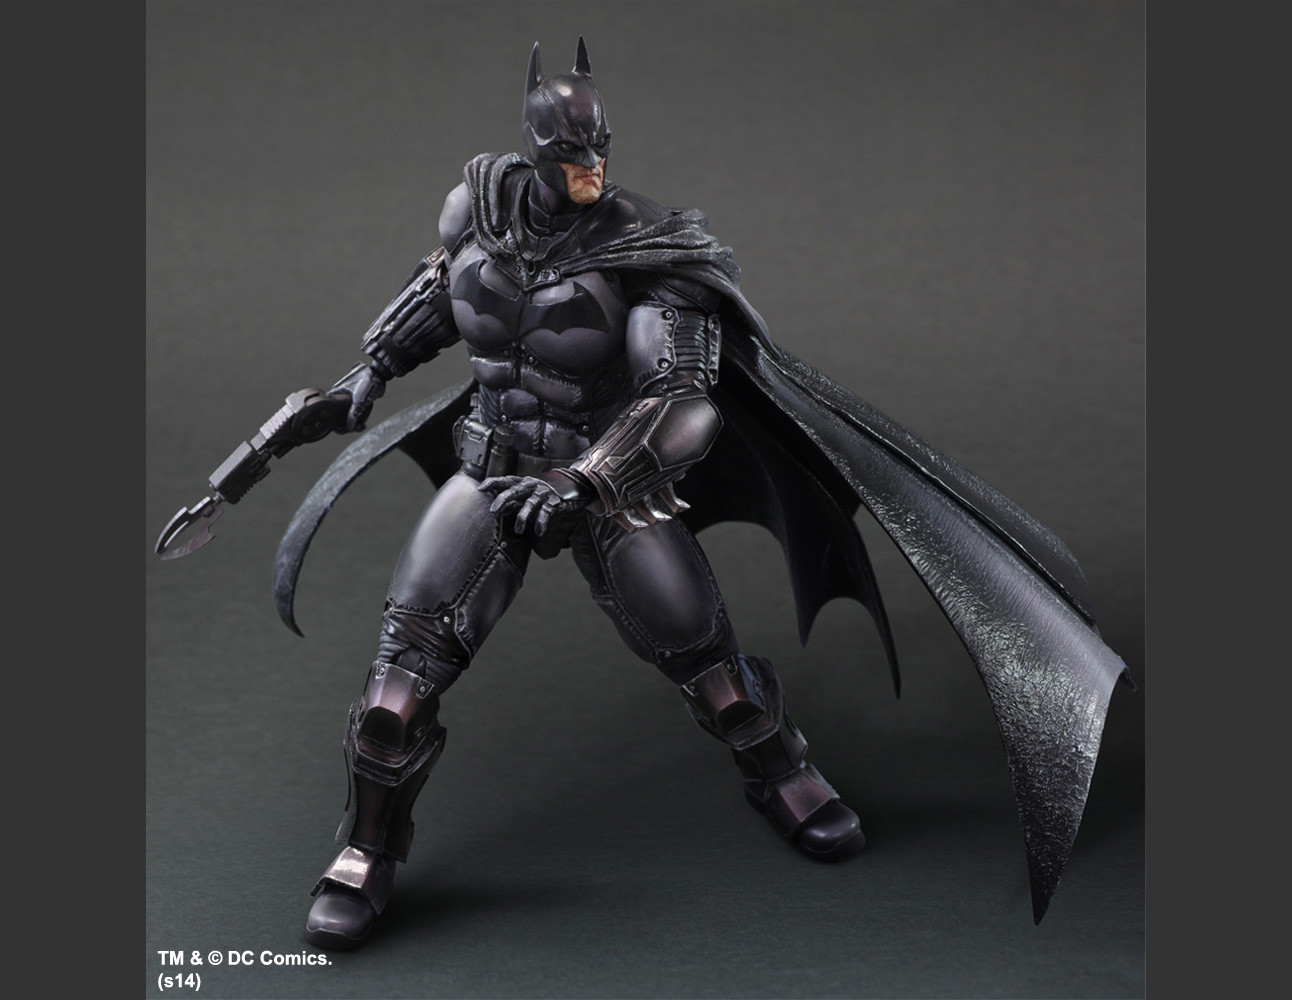 BATMAN™: ARKHAM ORIGINS PLAY ARTS -KAI- BATMAN